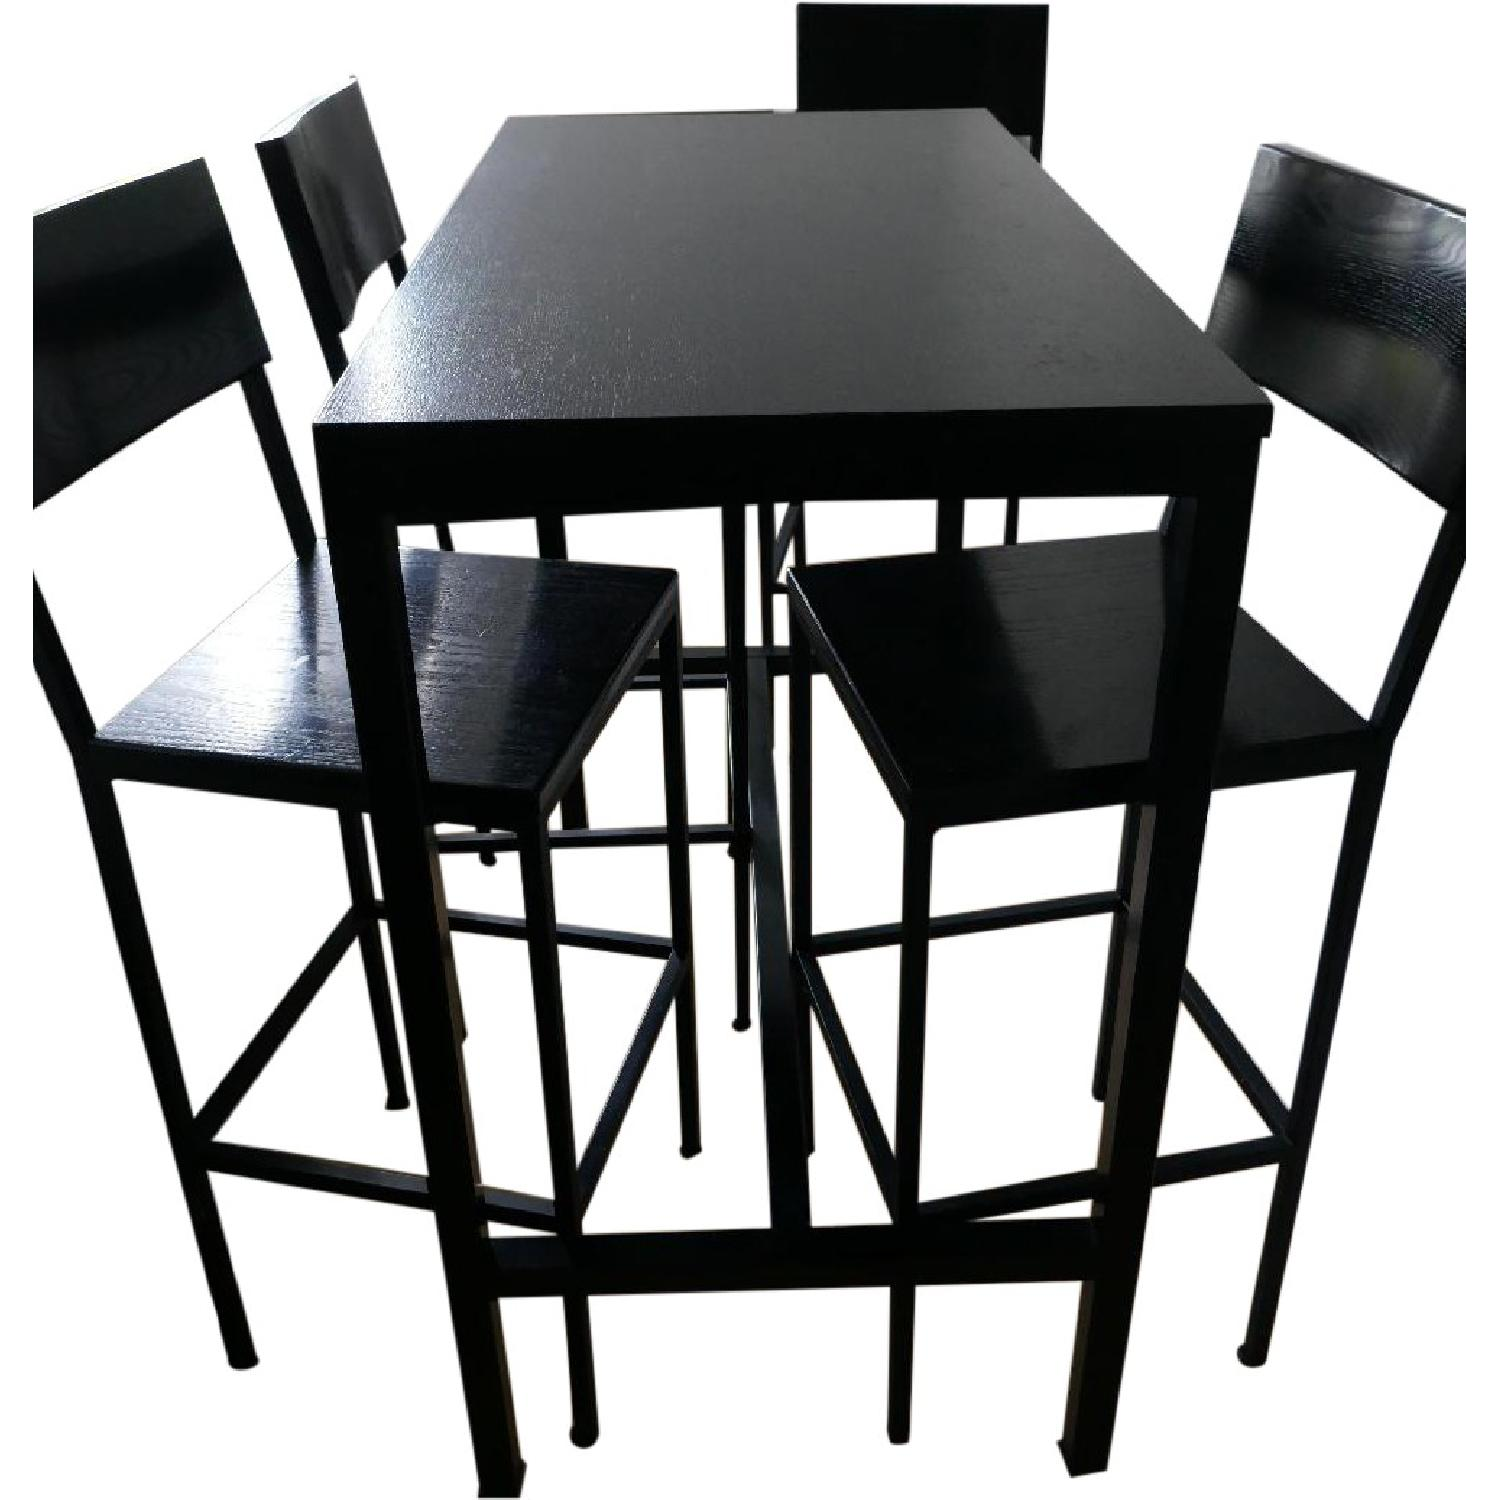 Black Metal Bar Height Table w/ 4 Chairs